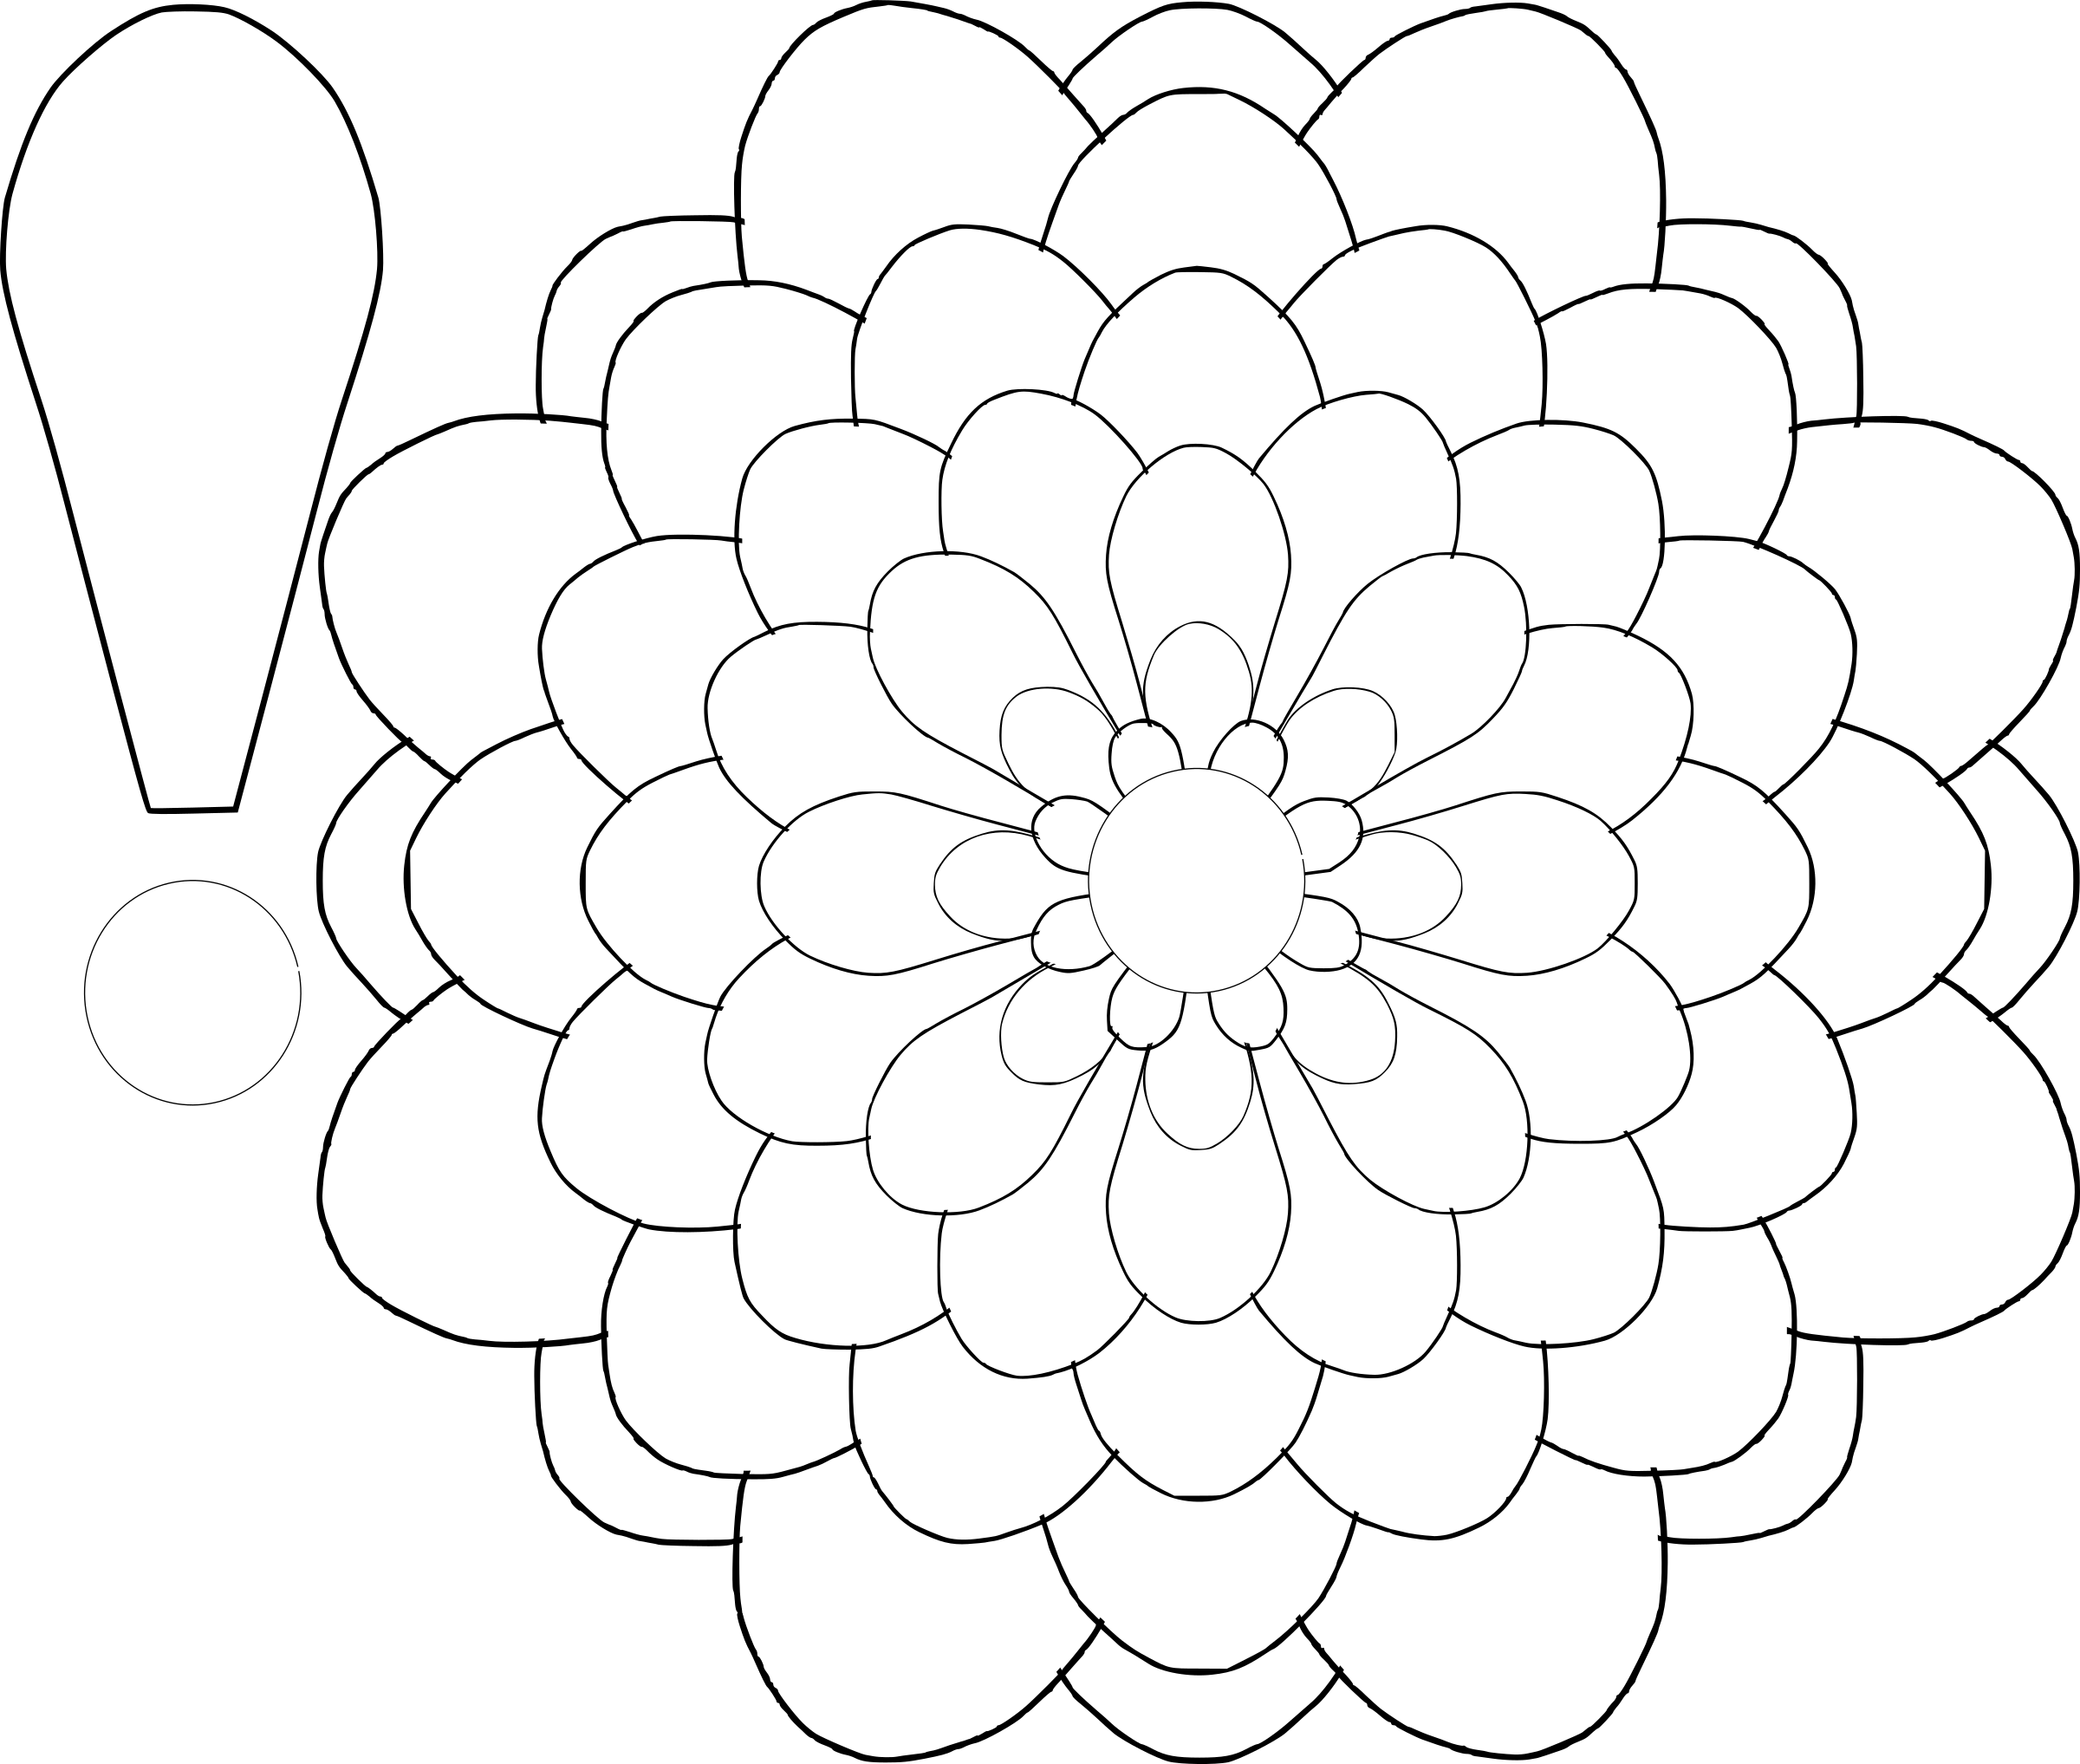 Flower shapes clipart jpg black and white Flower Drawing Template at GetDrawings.com | Free for personal use ... jpg black and white